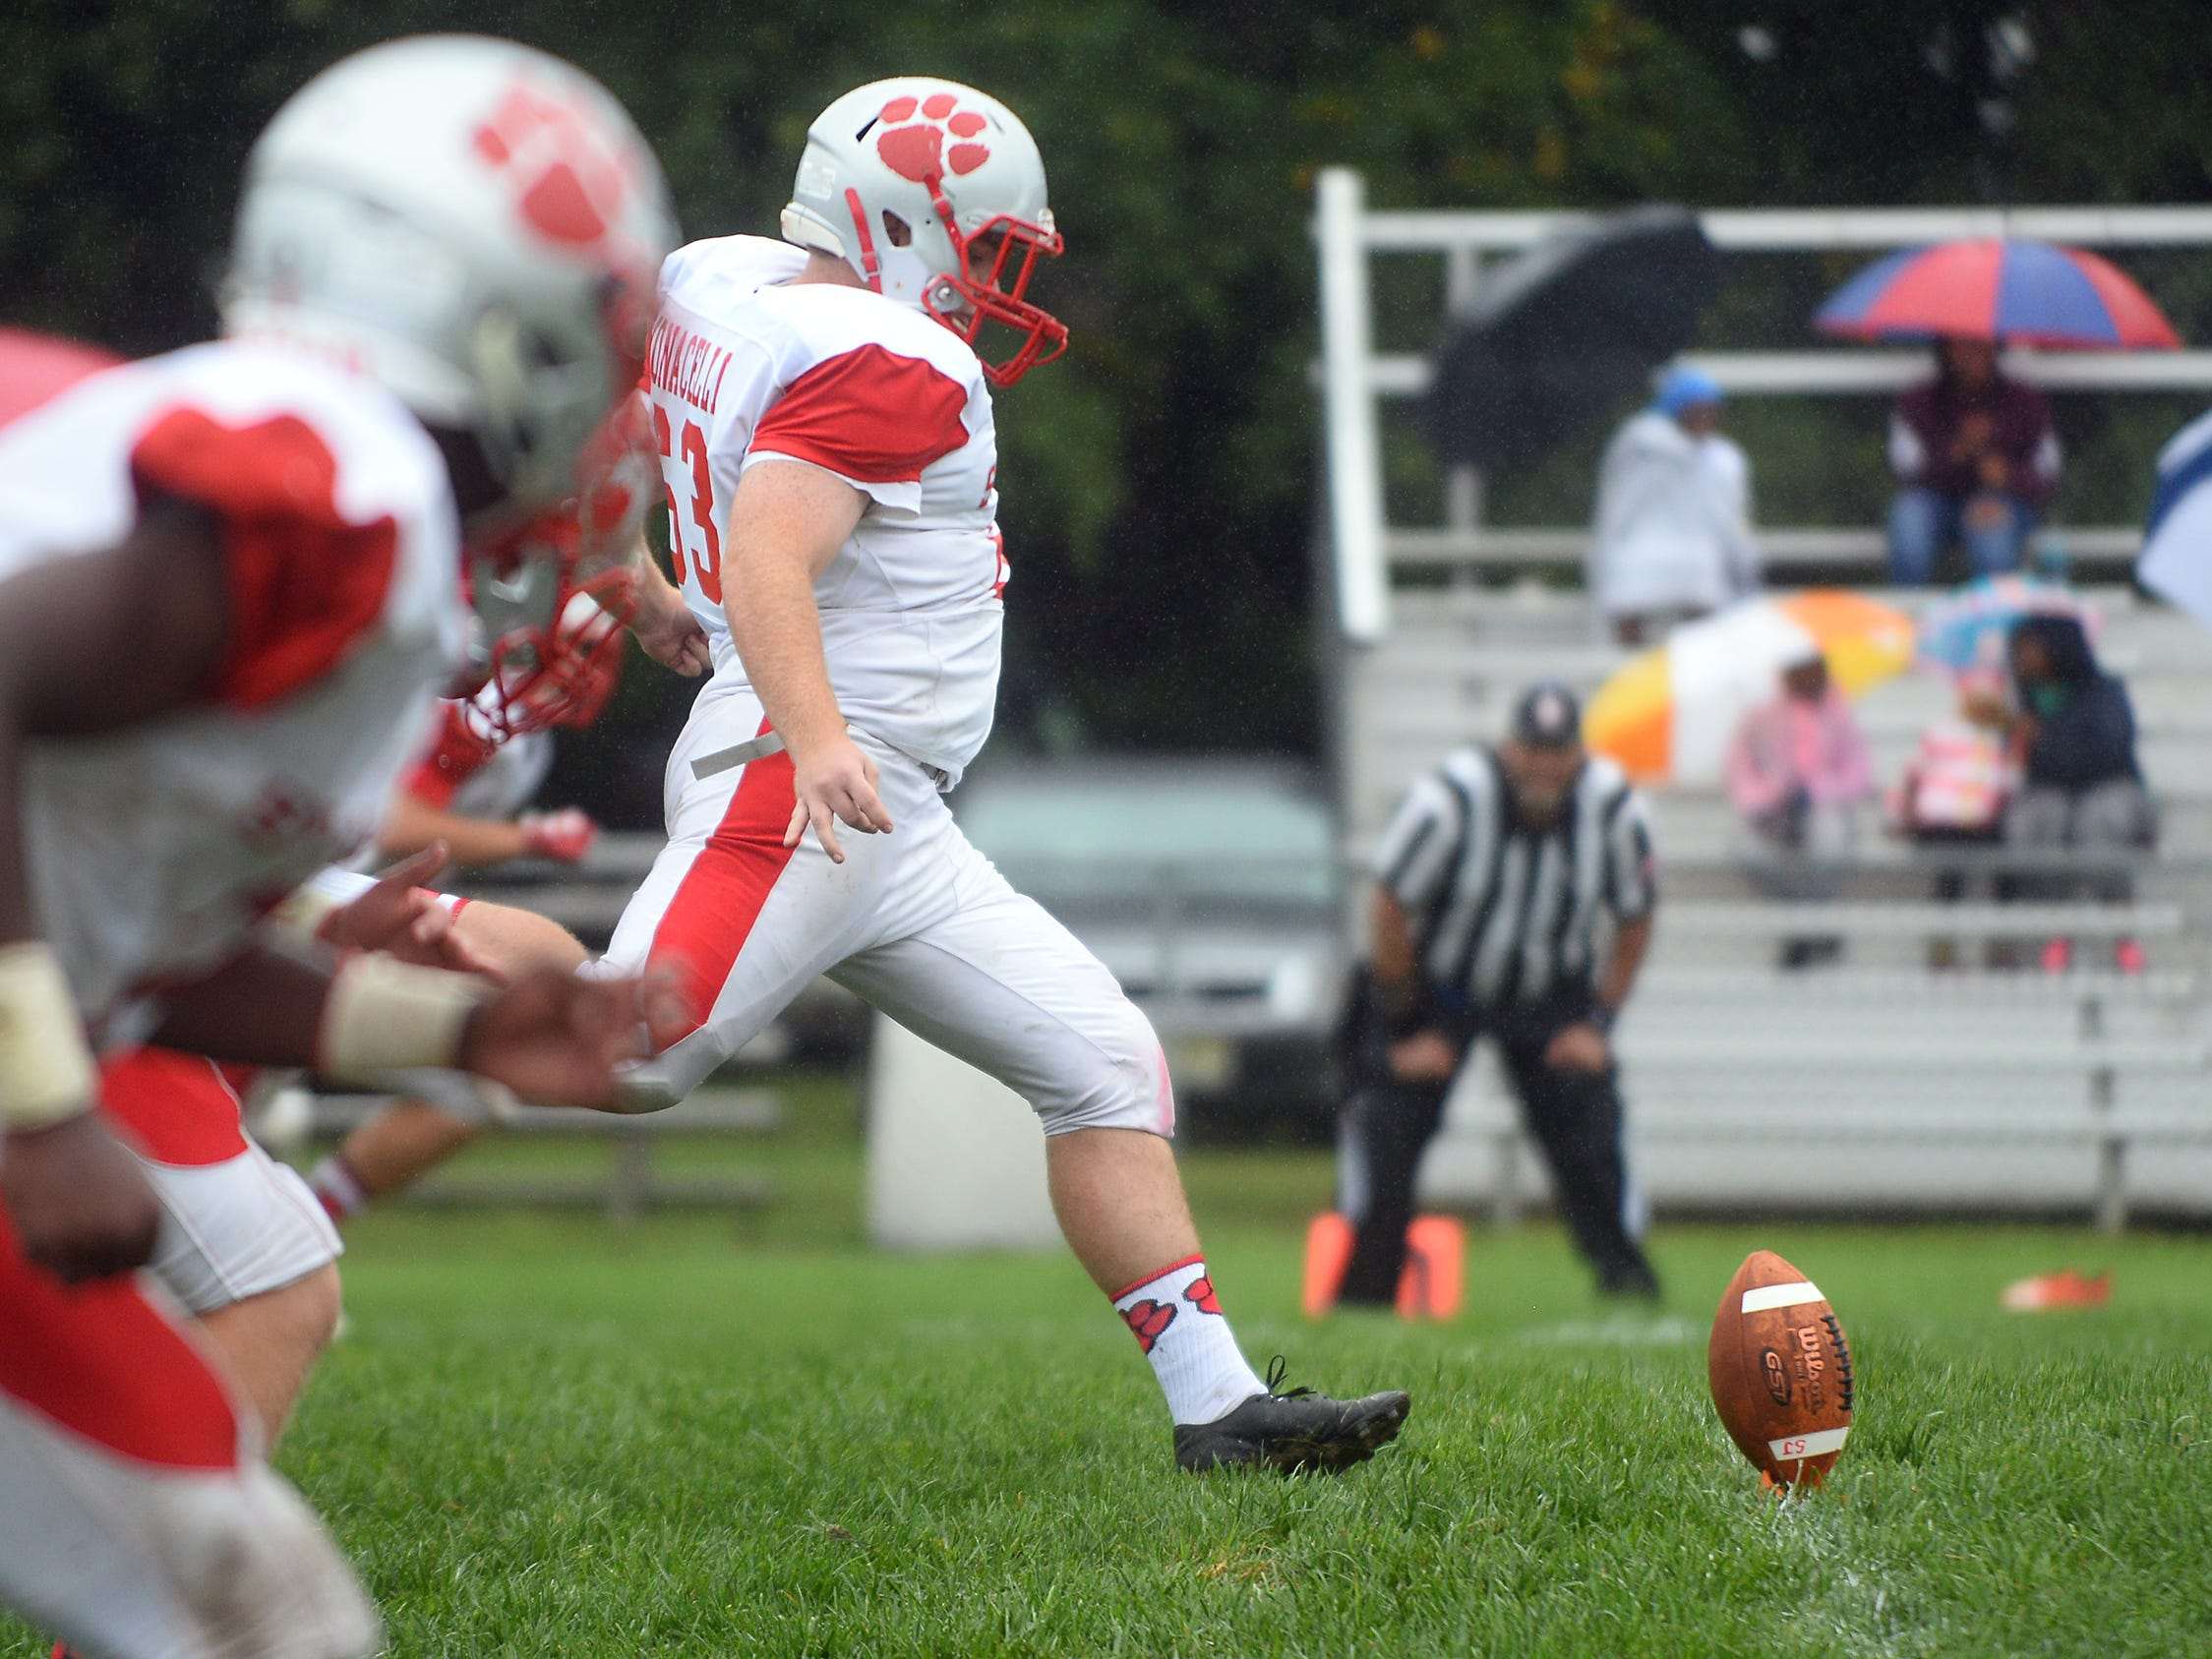 St. Joeseph kicker, Adam Monacelli (63) boots the pigskin during a game against Millville. The Wildcats rolled past the Thunderbolts 34-6 in Hammonton on Saturday, September 8.